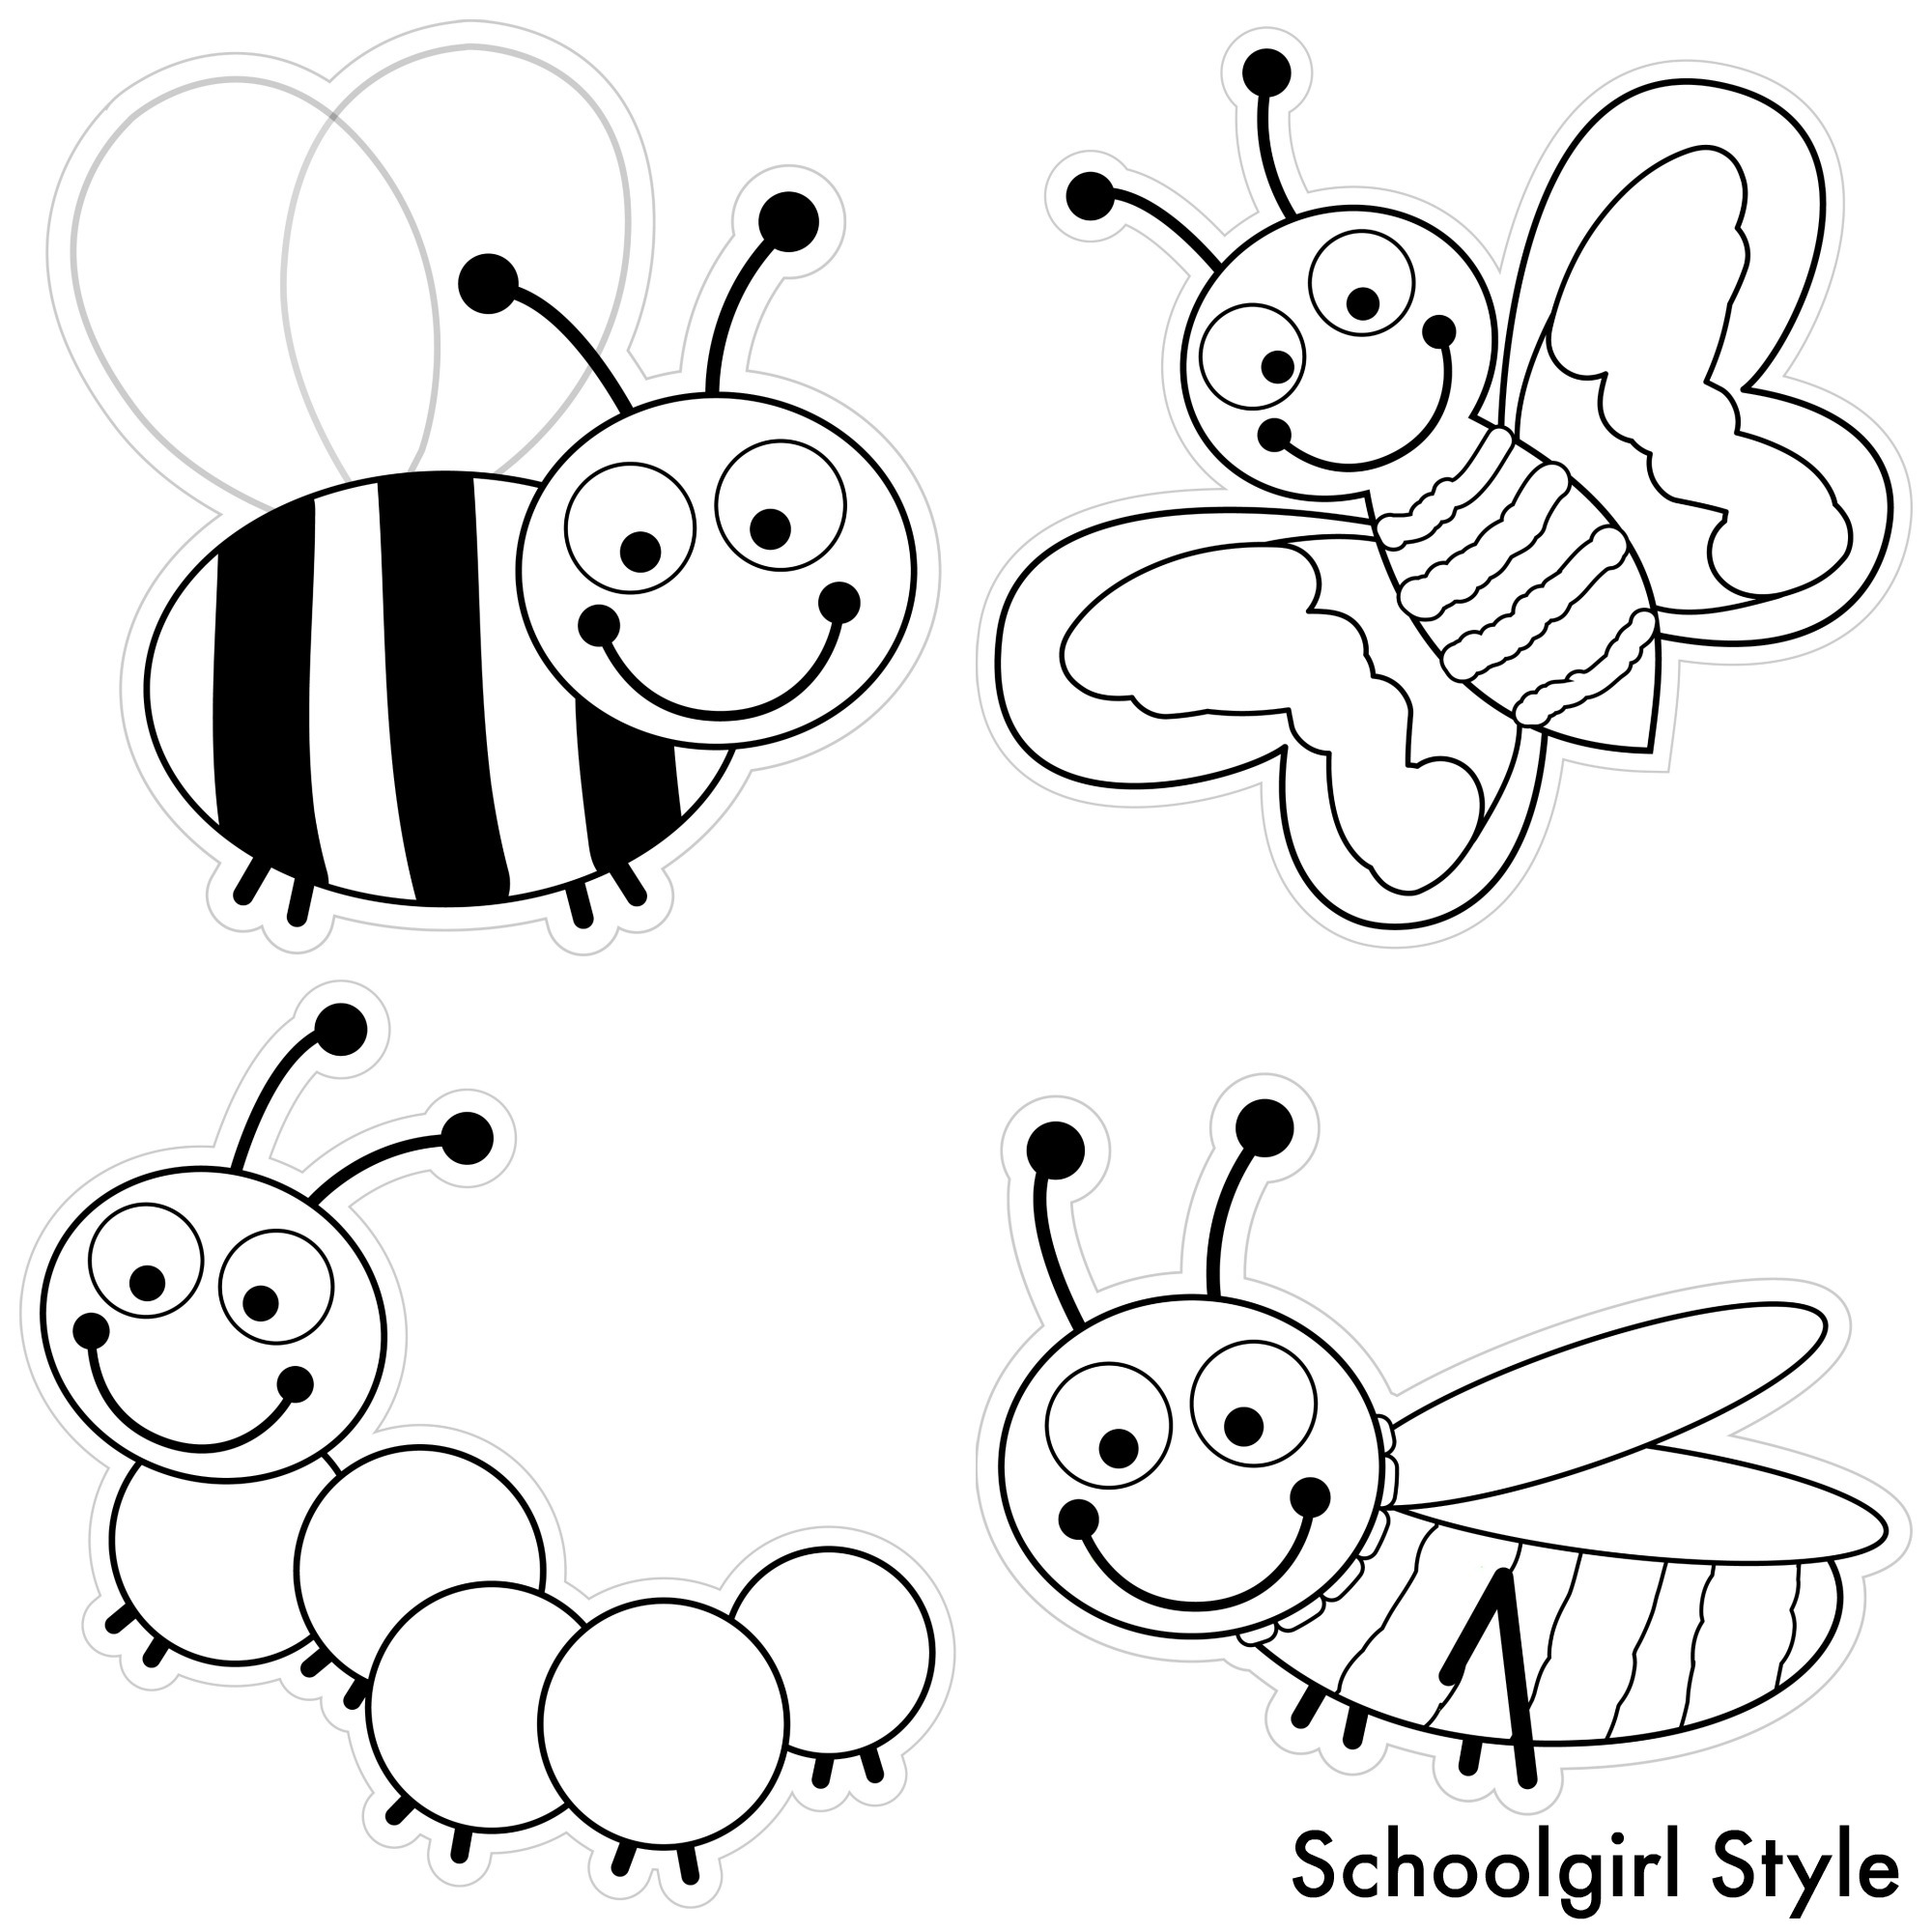 It's just a picture of Crush Xname The Love Bug Free Coloring Pages